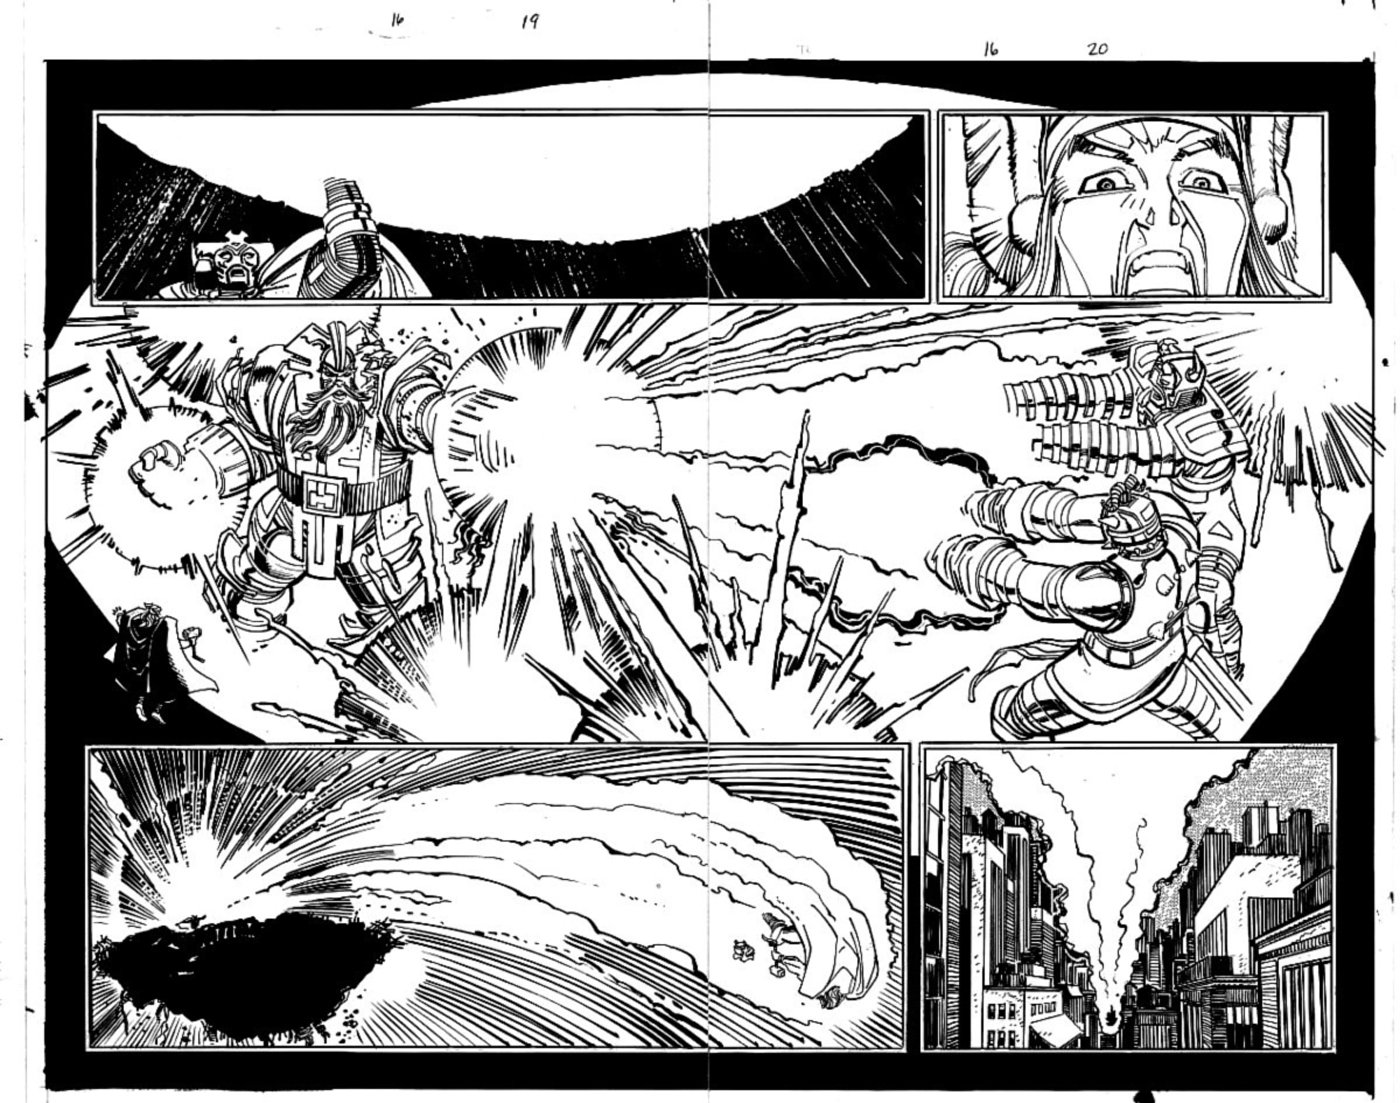 Thor #16 p 19-20 Double Page Spread (THOR & ODIN BATTLE GIANTS!) 1999